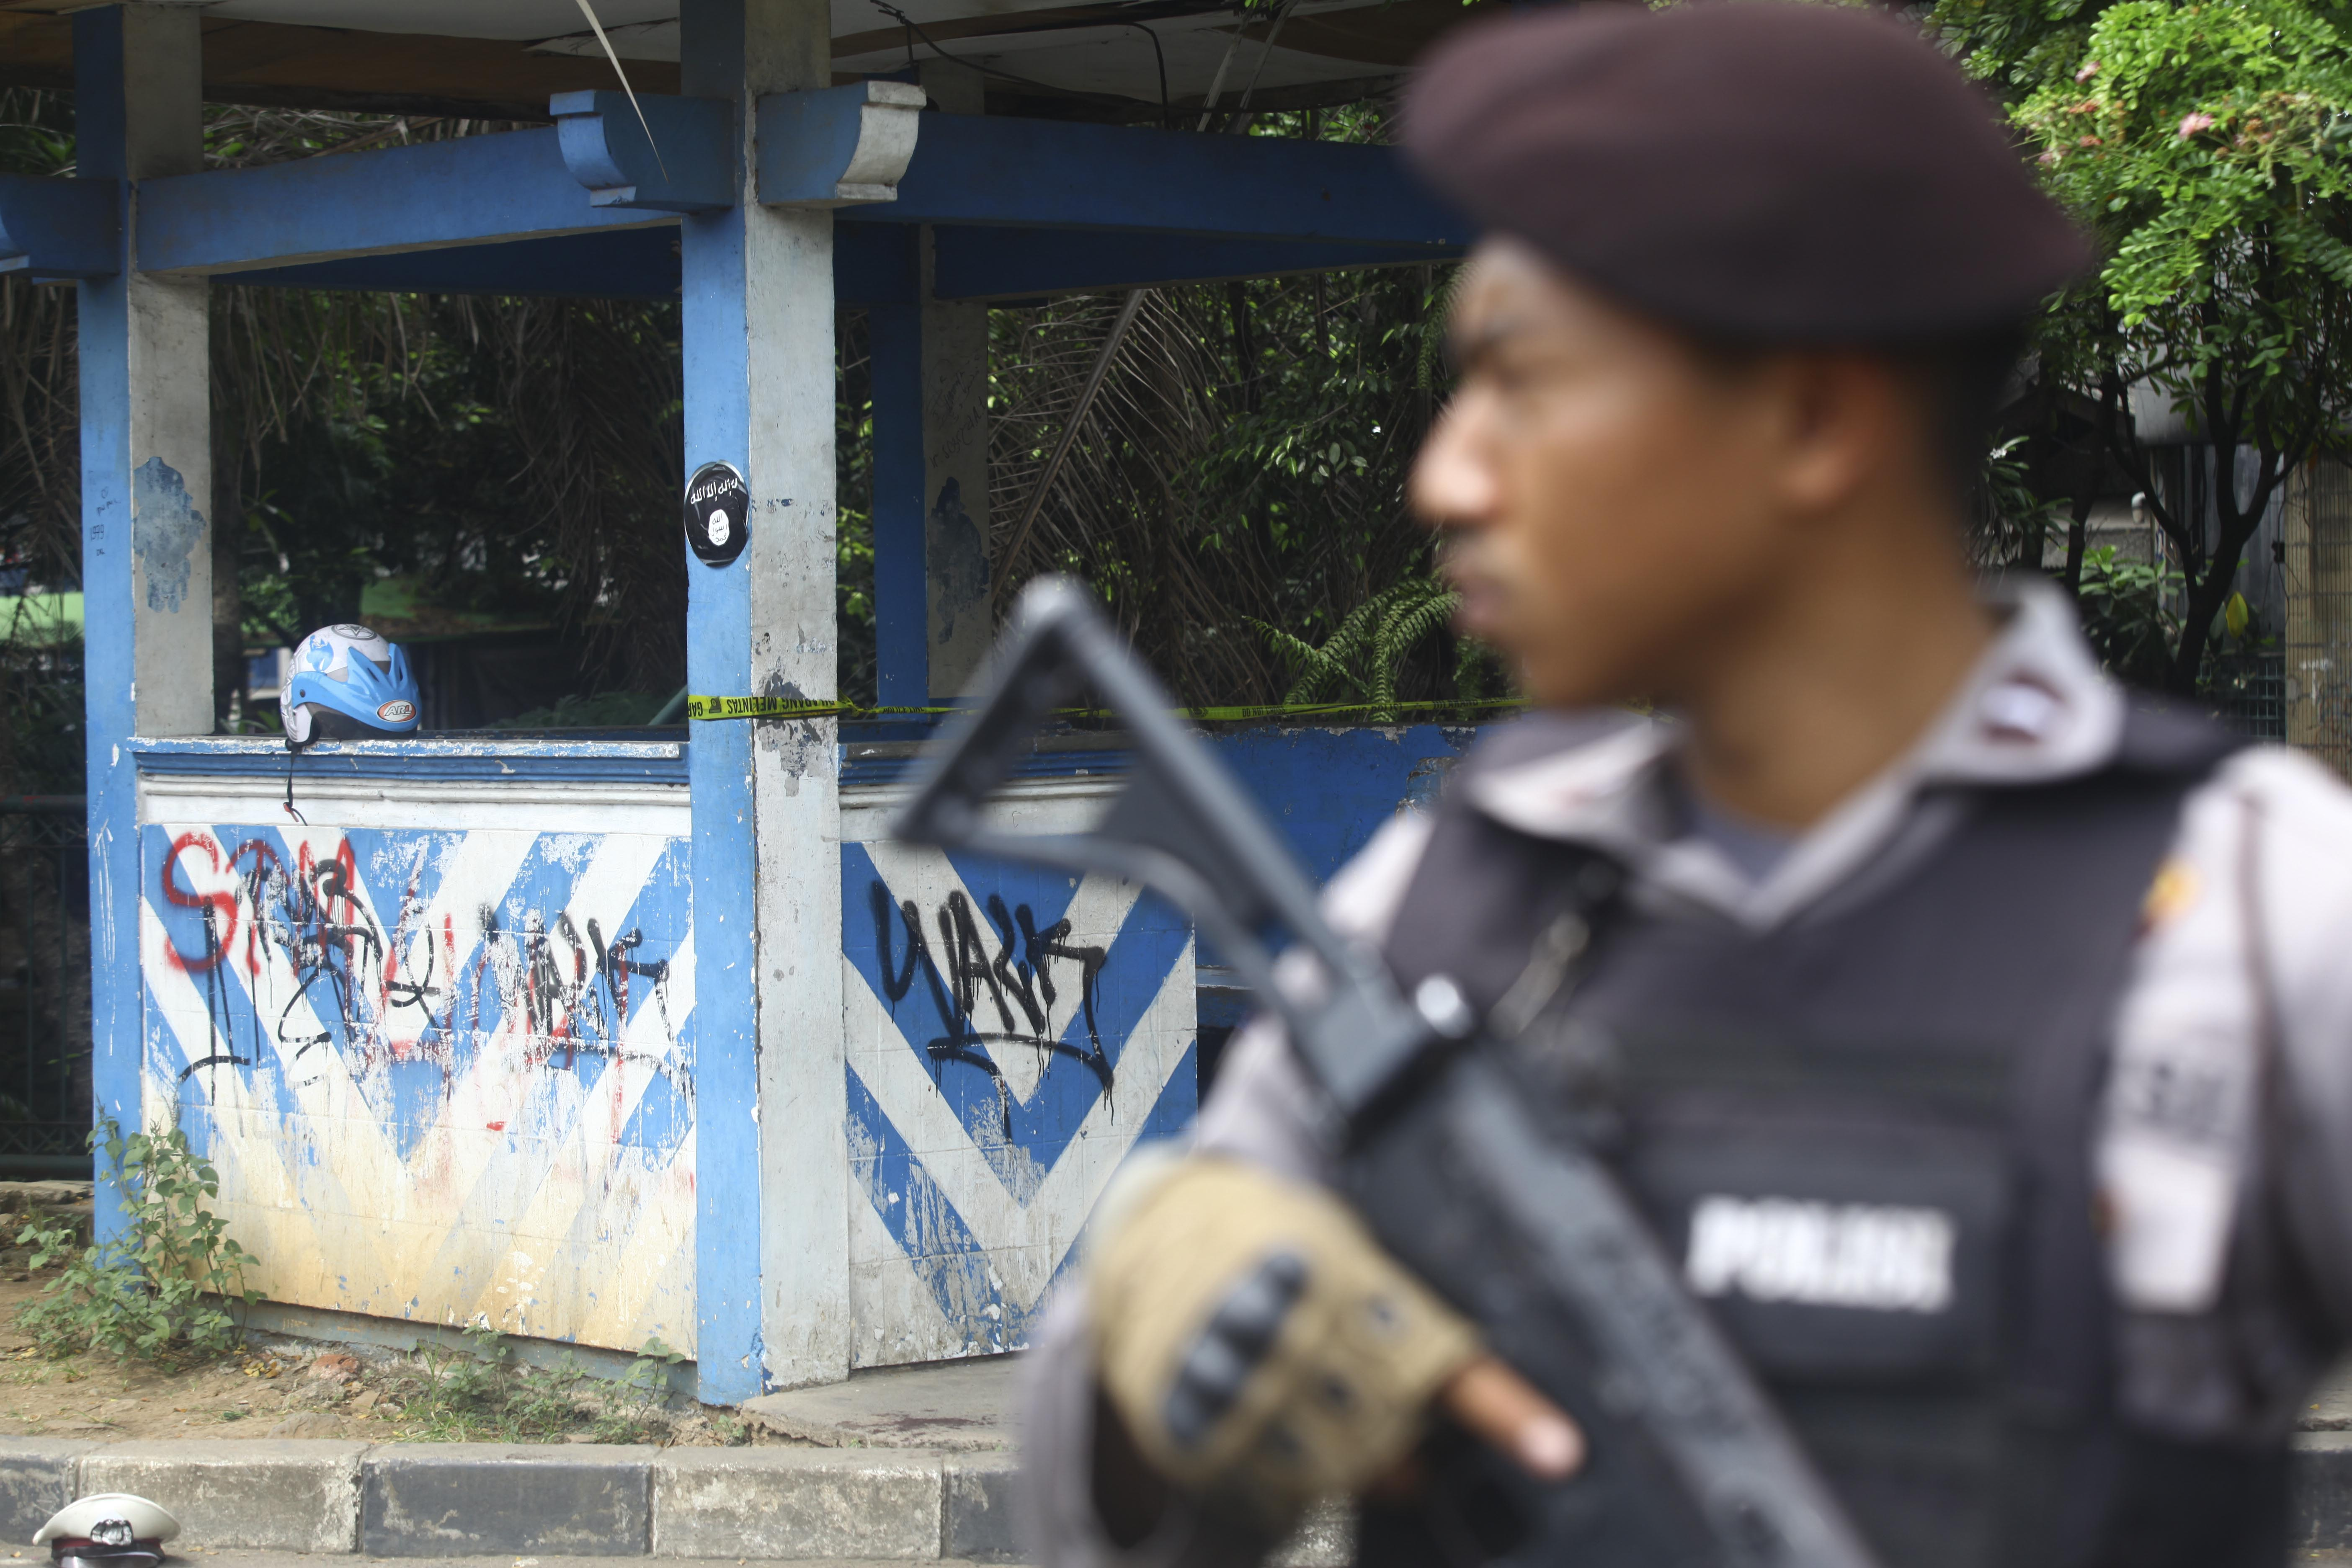 Officers cordon off the site of an attack on police by an alleged ISIS sympathizer wielding a machete and pipe bombs, on October 20, 2016 in Tangerang, Indonesia.